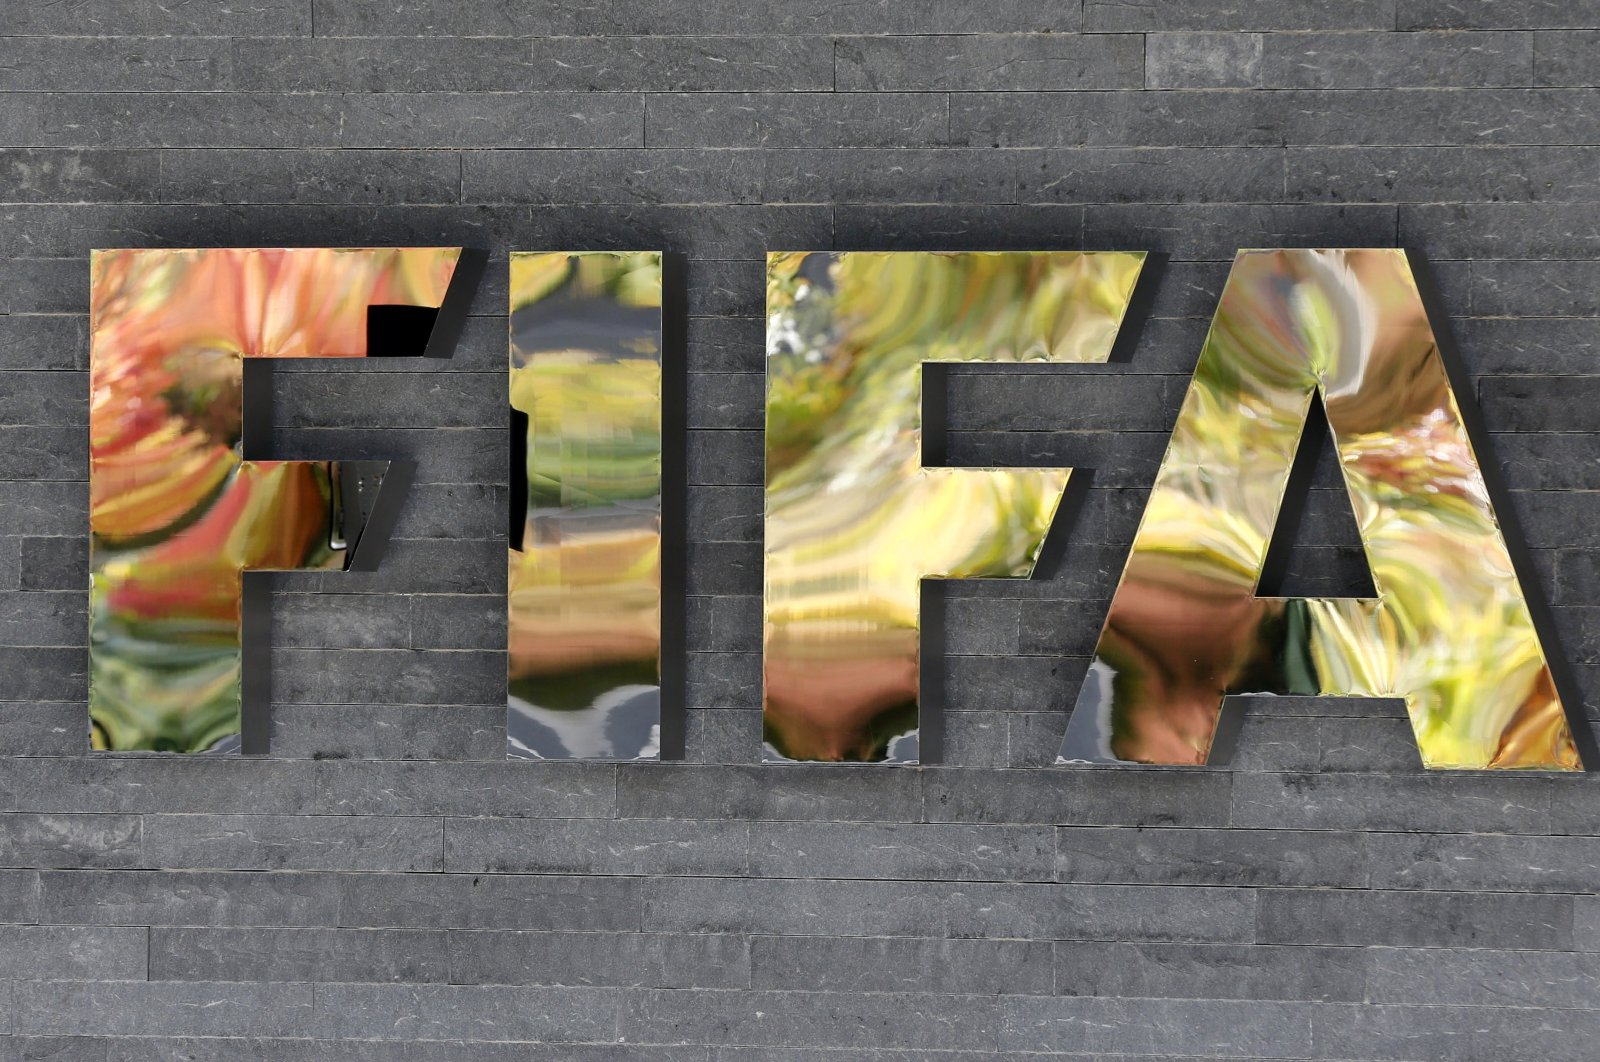 The FIFA displayed at its headquarters in Zurich, Switzerland, Sept. 25, 2015.